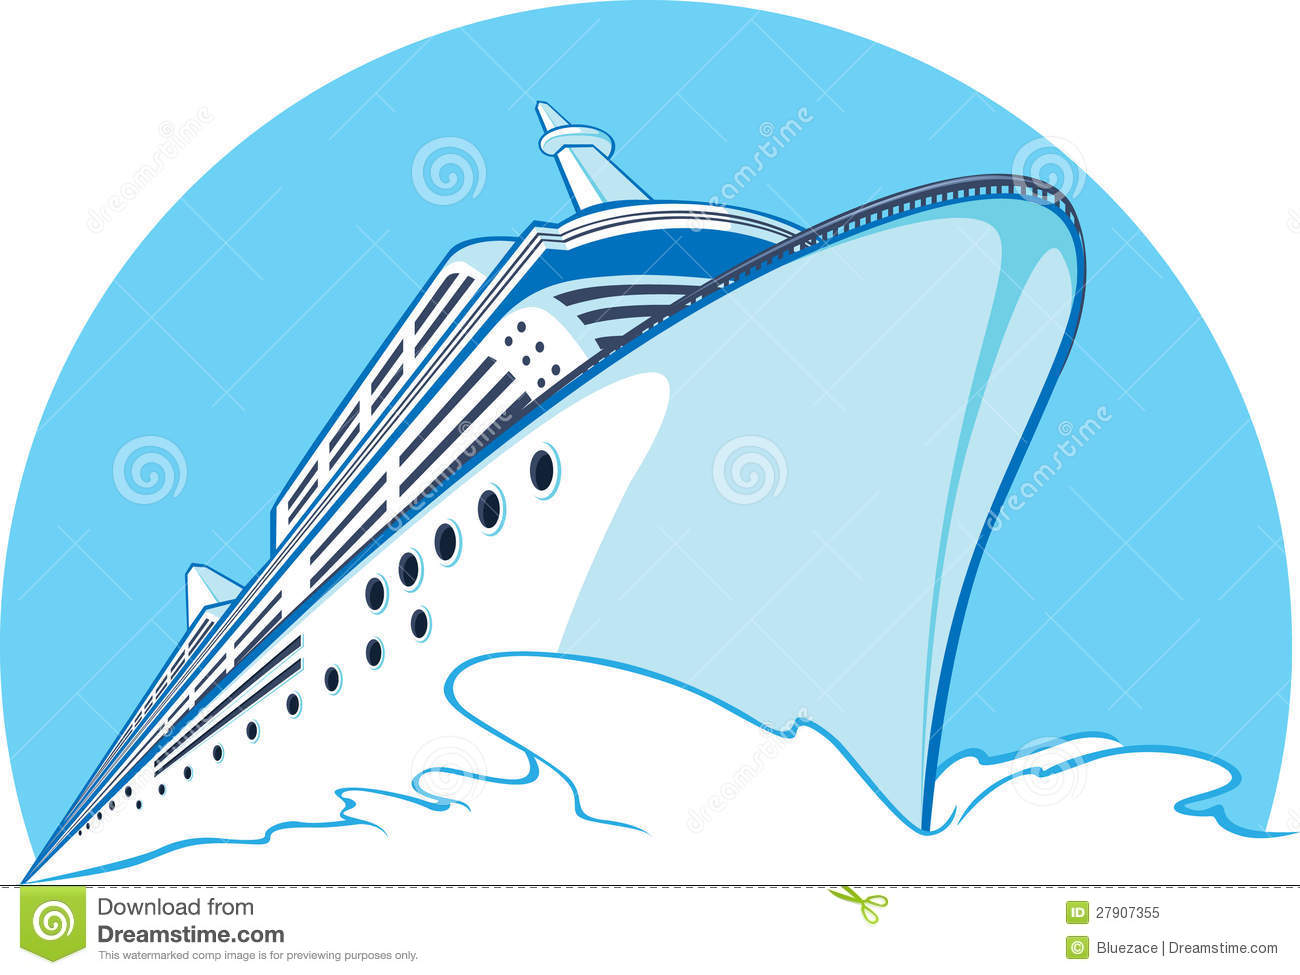 Cruise Ship Clip Art. Cruise Ship Royalty Free Stock .